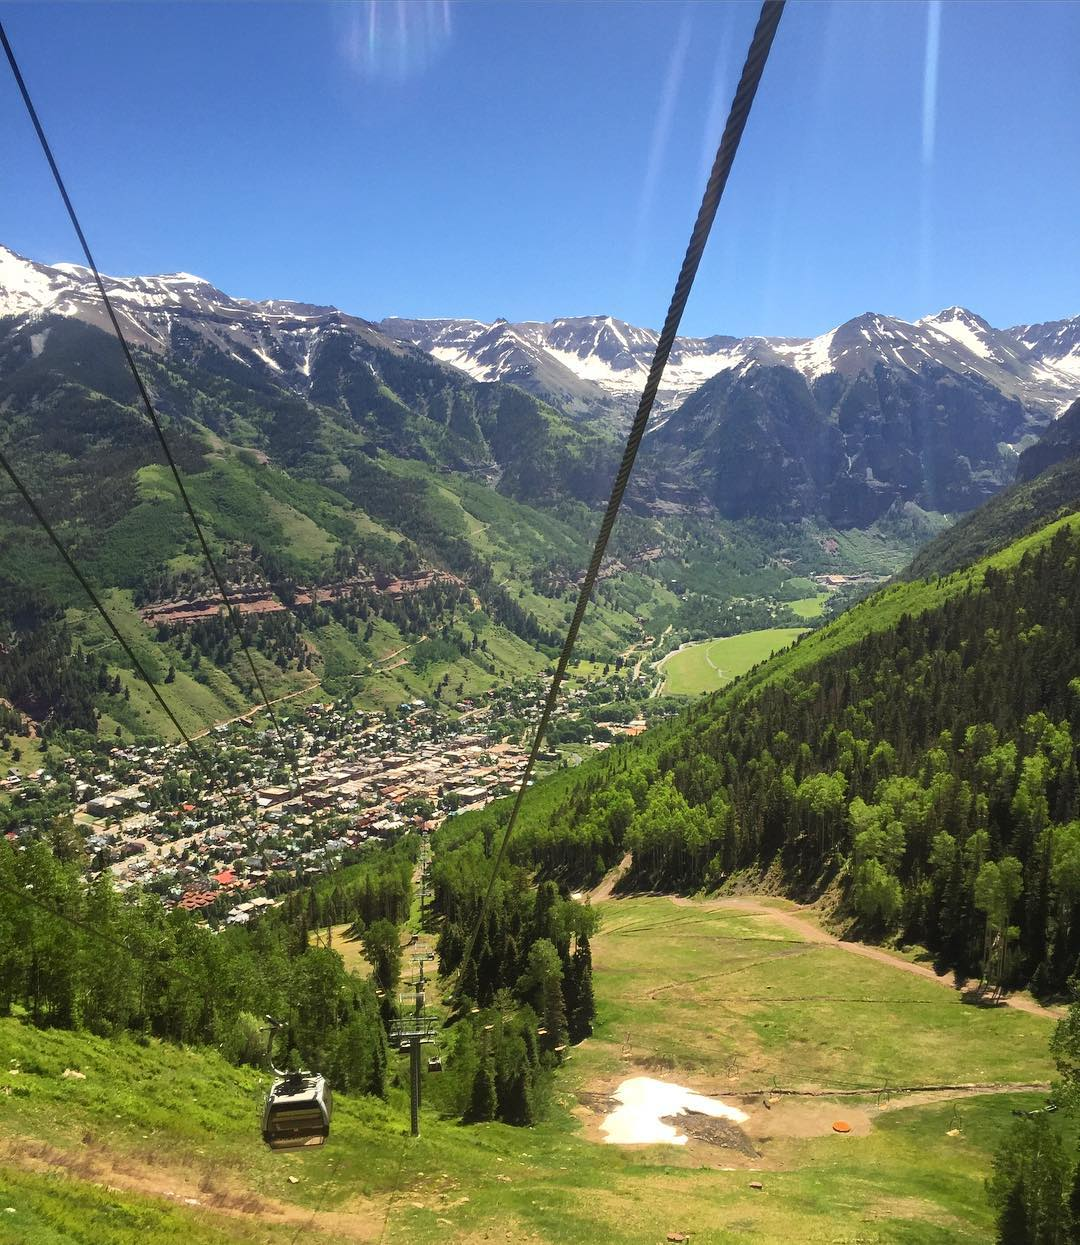 Why can't all commutes be this beautiful - cheers to the free gondola between Telluride's villages #Telluride #roadtrip #roadtrippinwithrachel